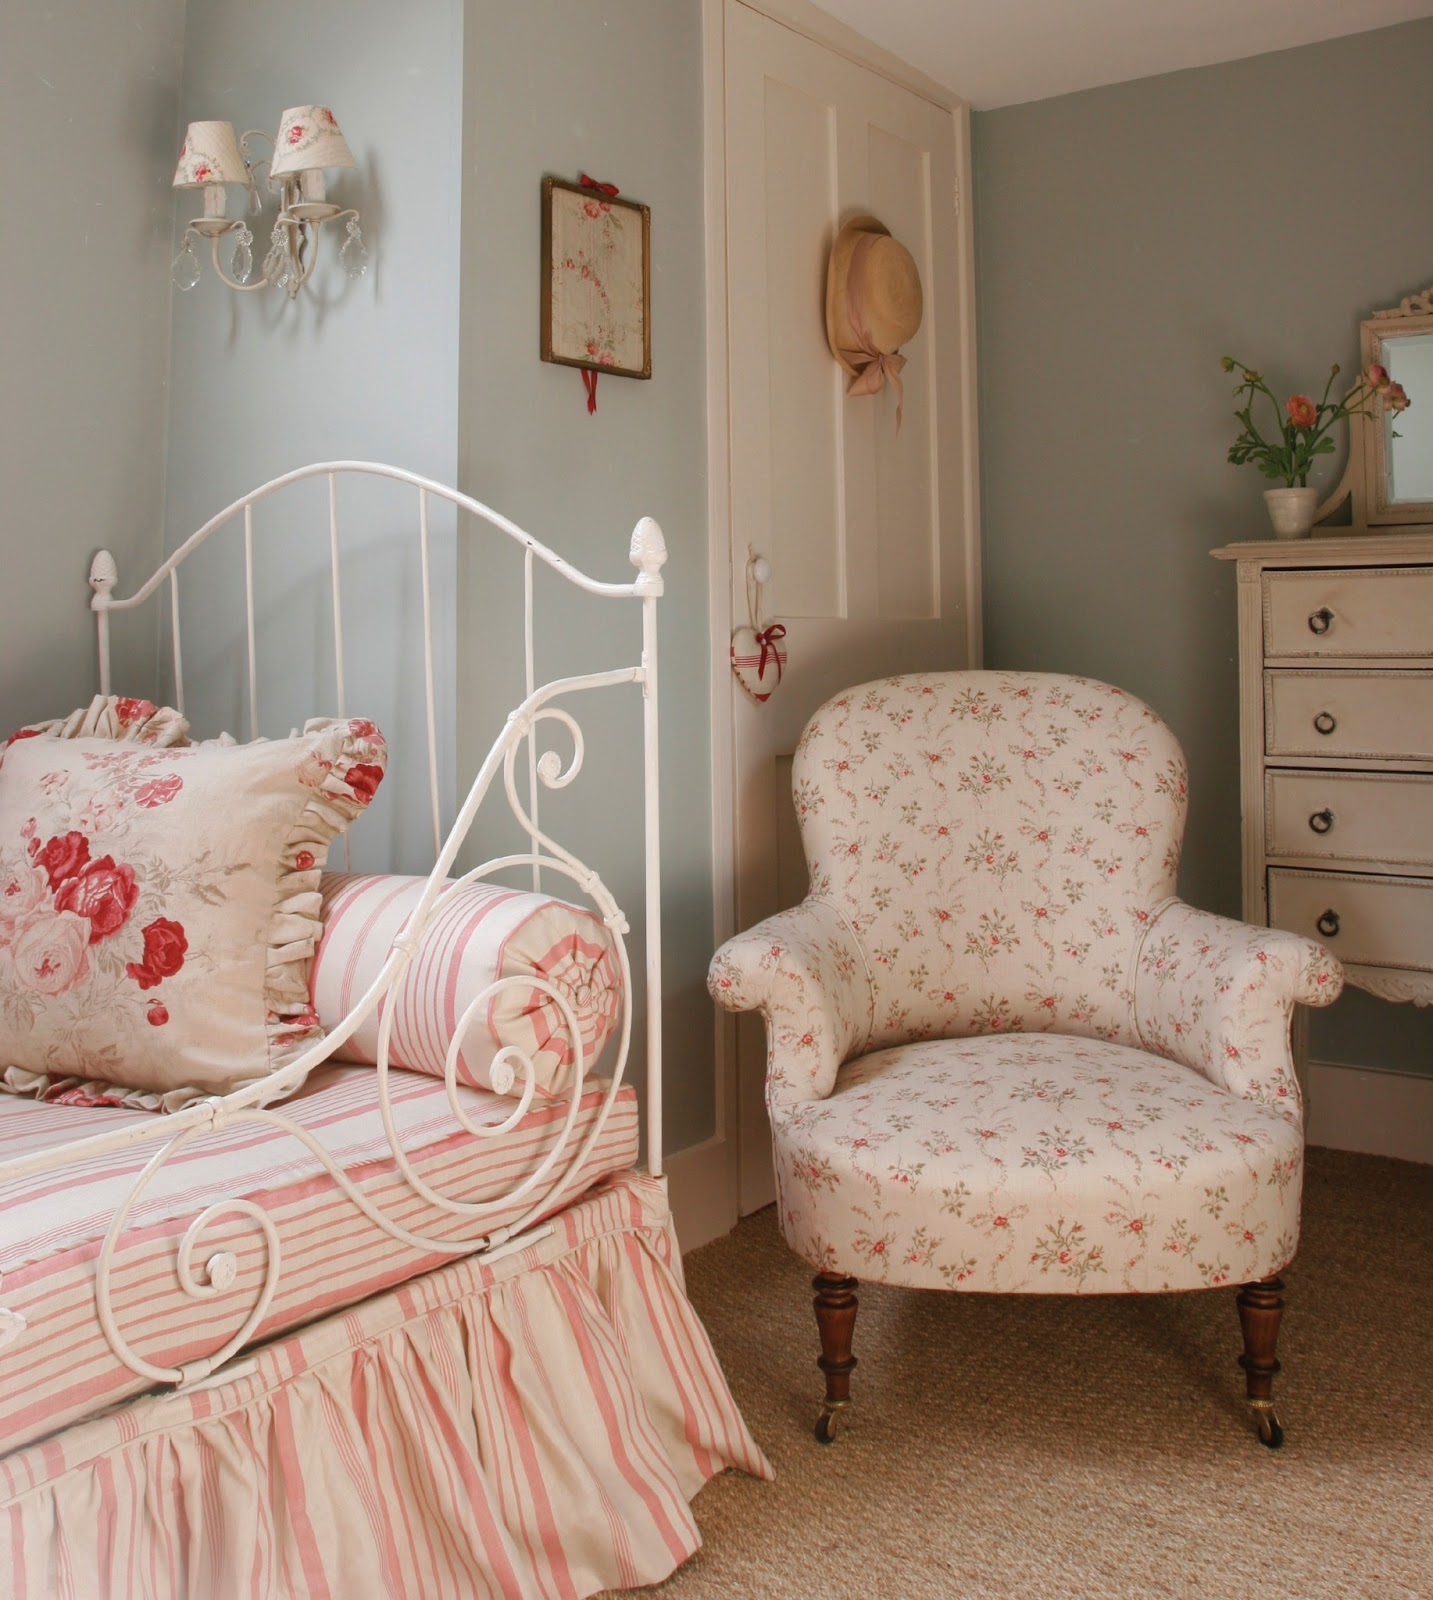 Country Cottage Decorating Ideas: Hydrangea Hill Cottage: Kate Forman's English Country Charm